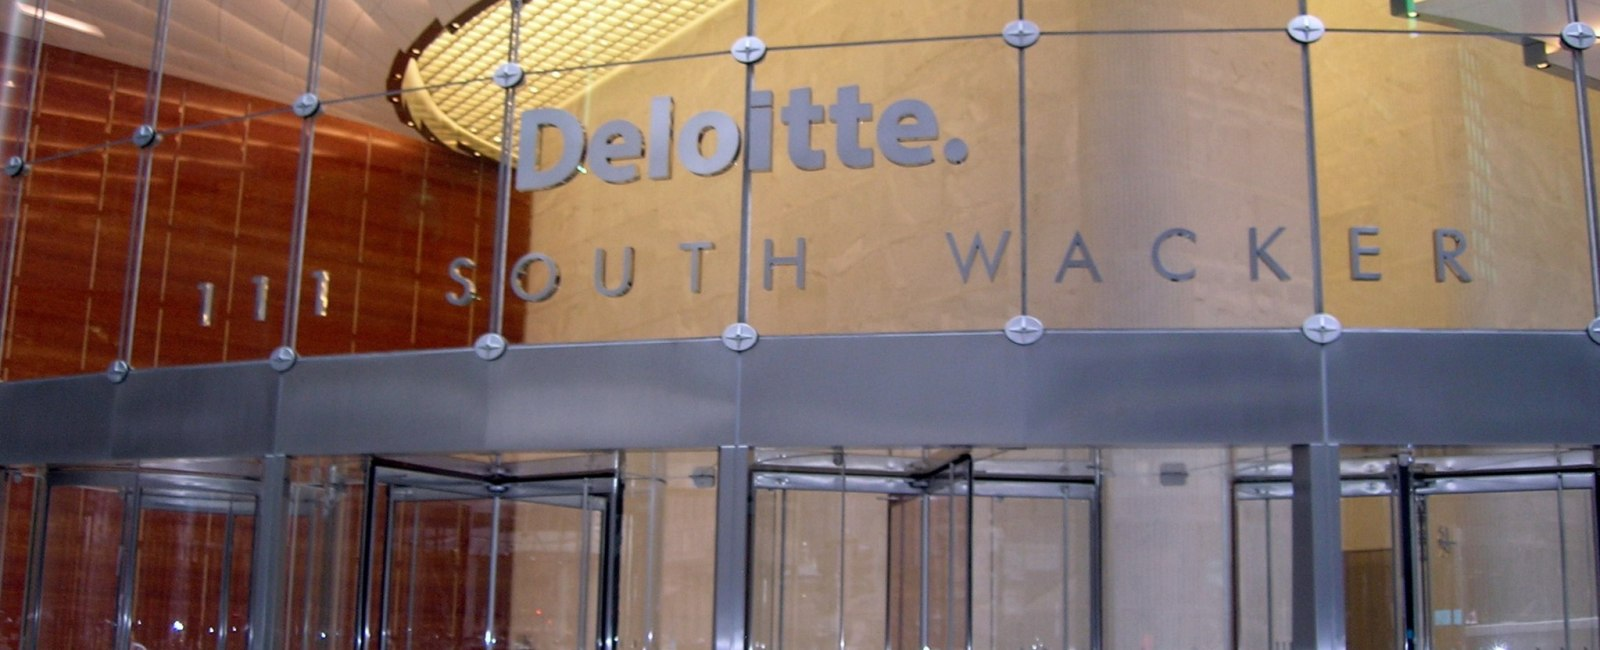 UiPath and Deloitte Jointly Awarded Several RPA Contracts with U.S. Government (Photo credit: Mblumber)